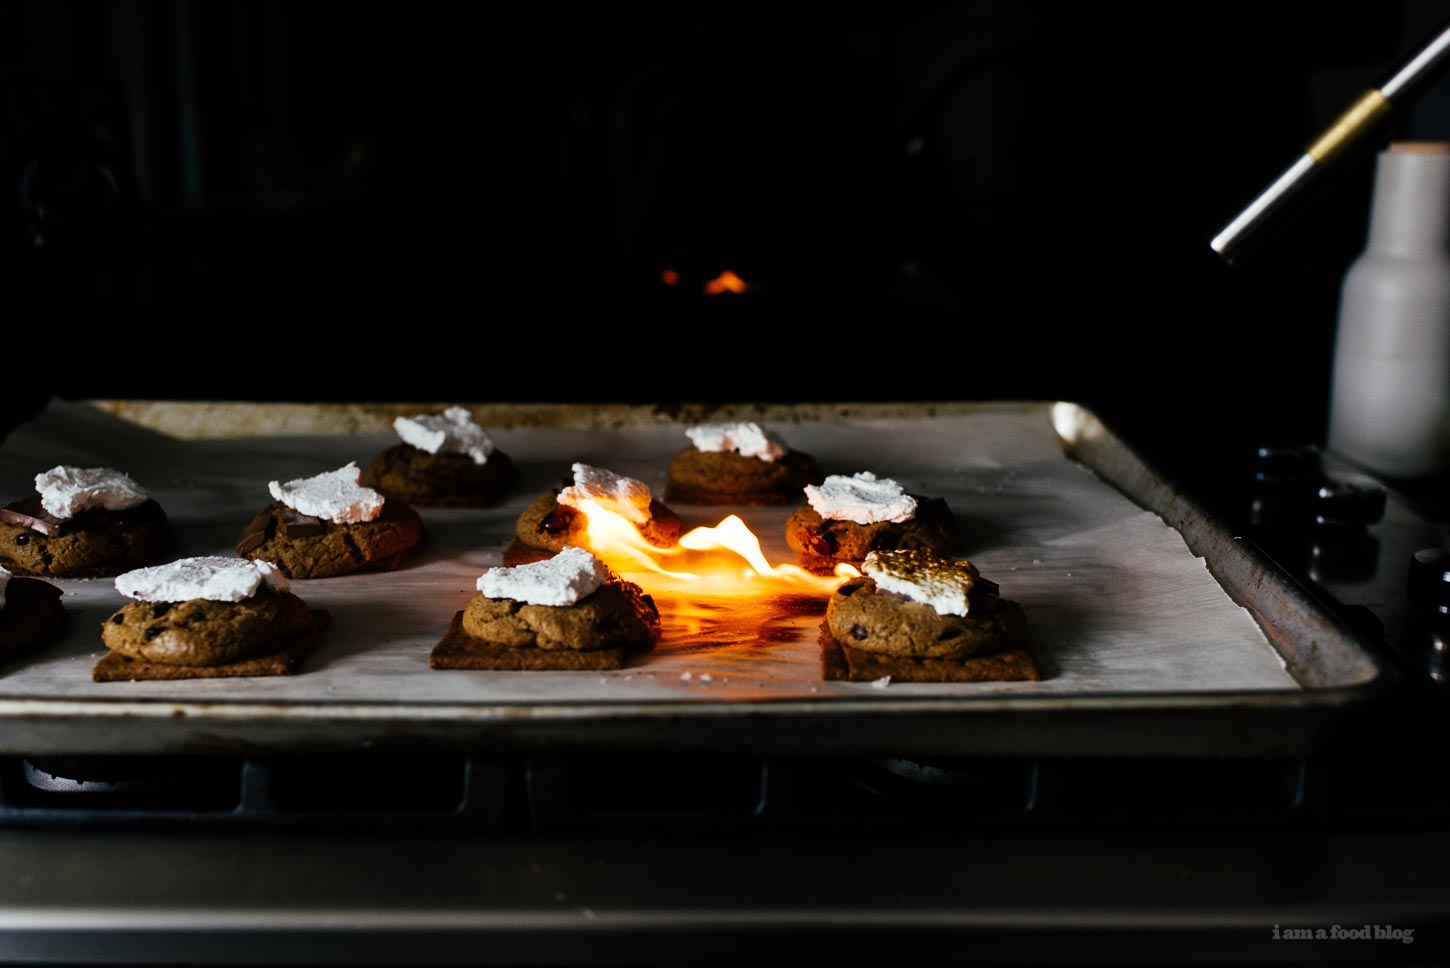 S'More Life: Chocolate Chip Cookie S'mores Recipe - www.iamafoodblog.com